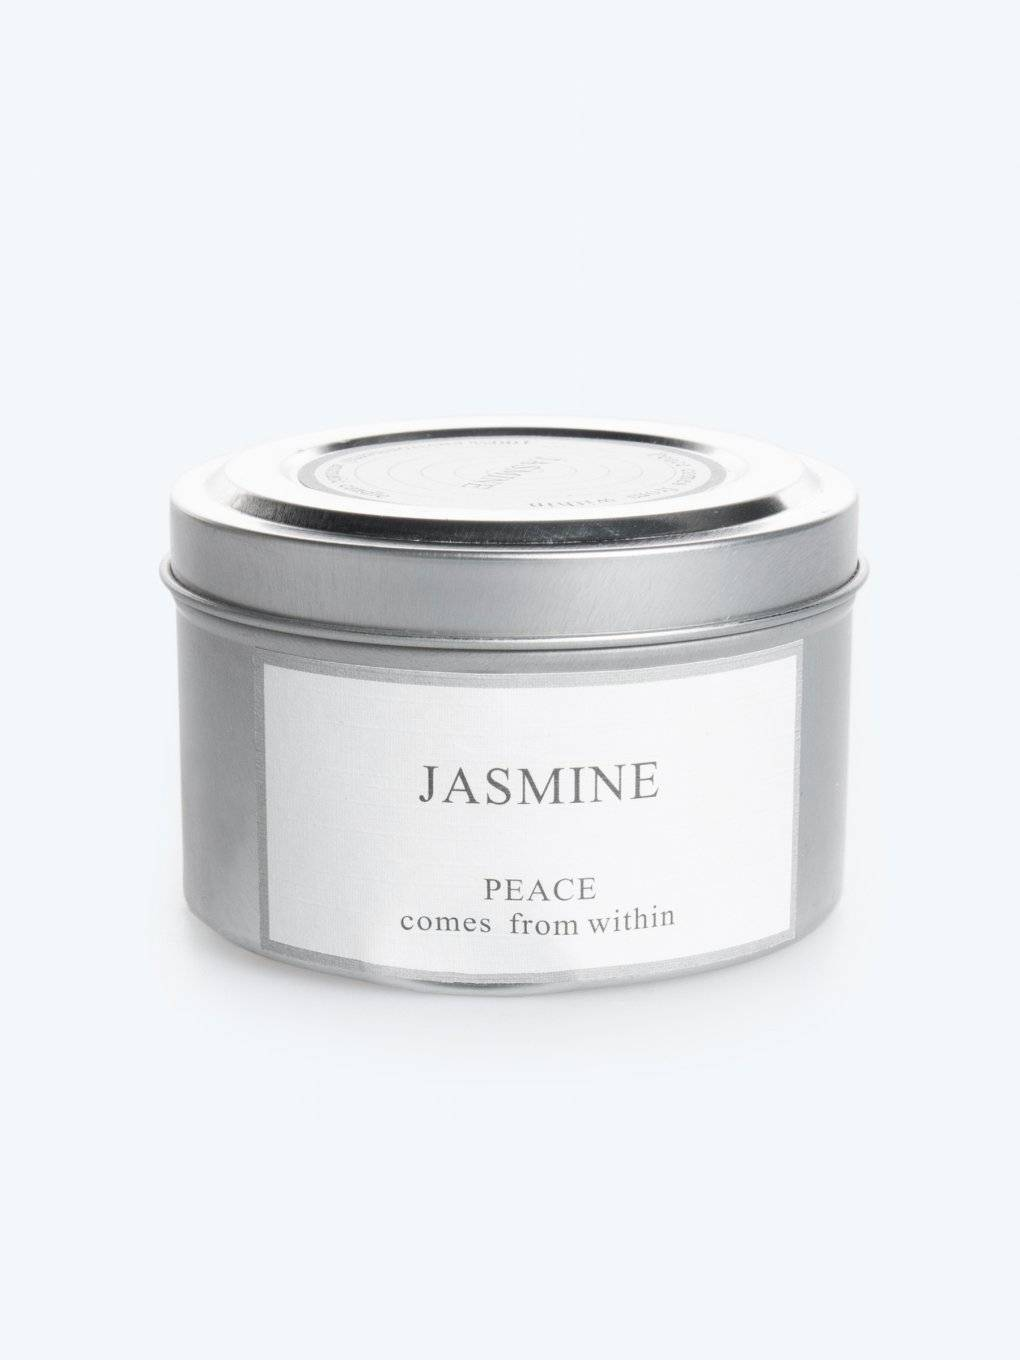 Jasmine scented tin candle